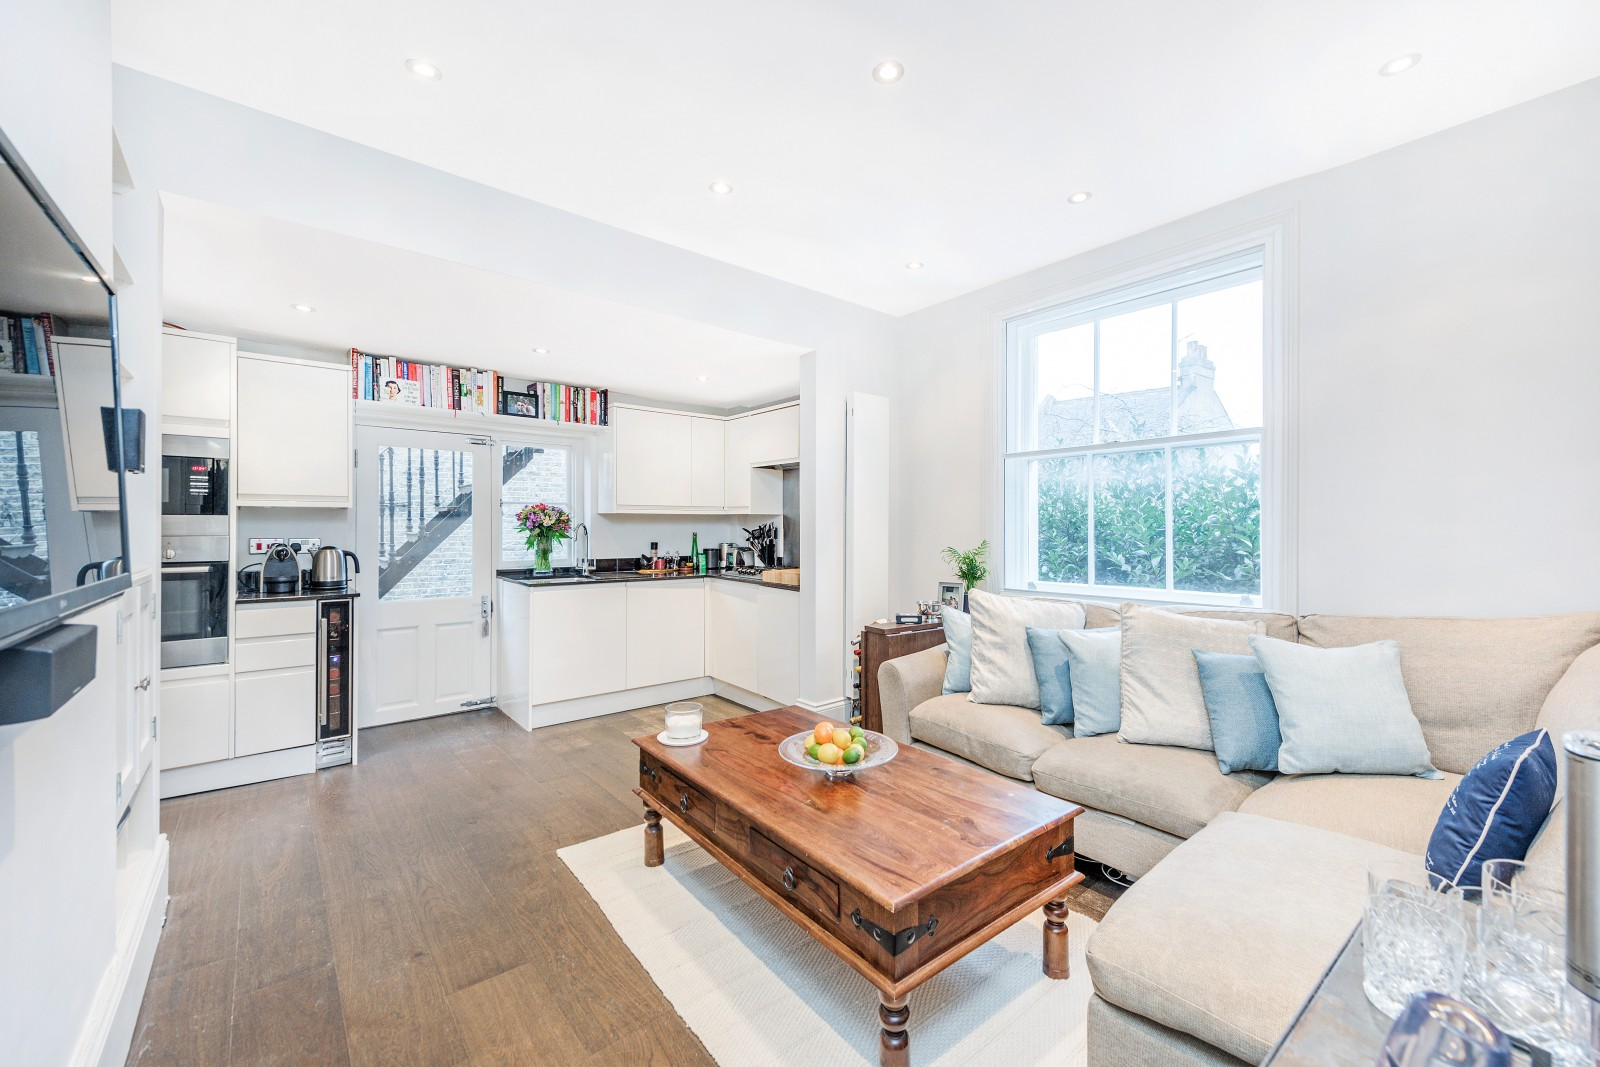 Wandsworth Bridge Road, SW6 - £649,950